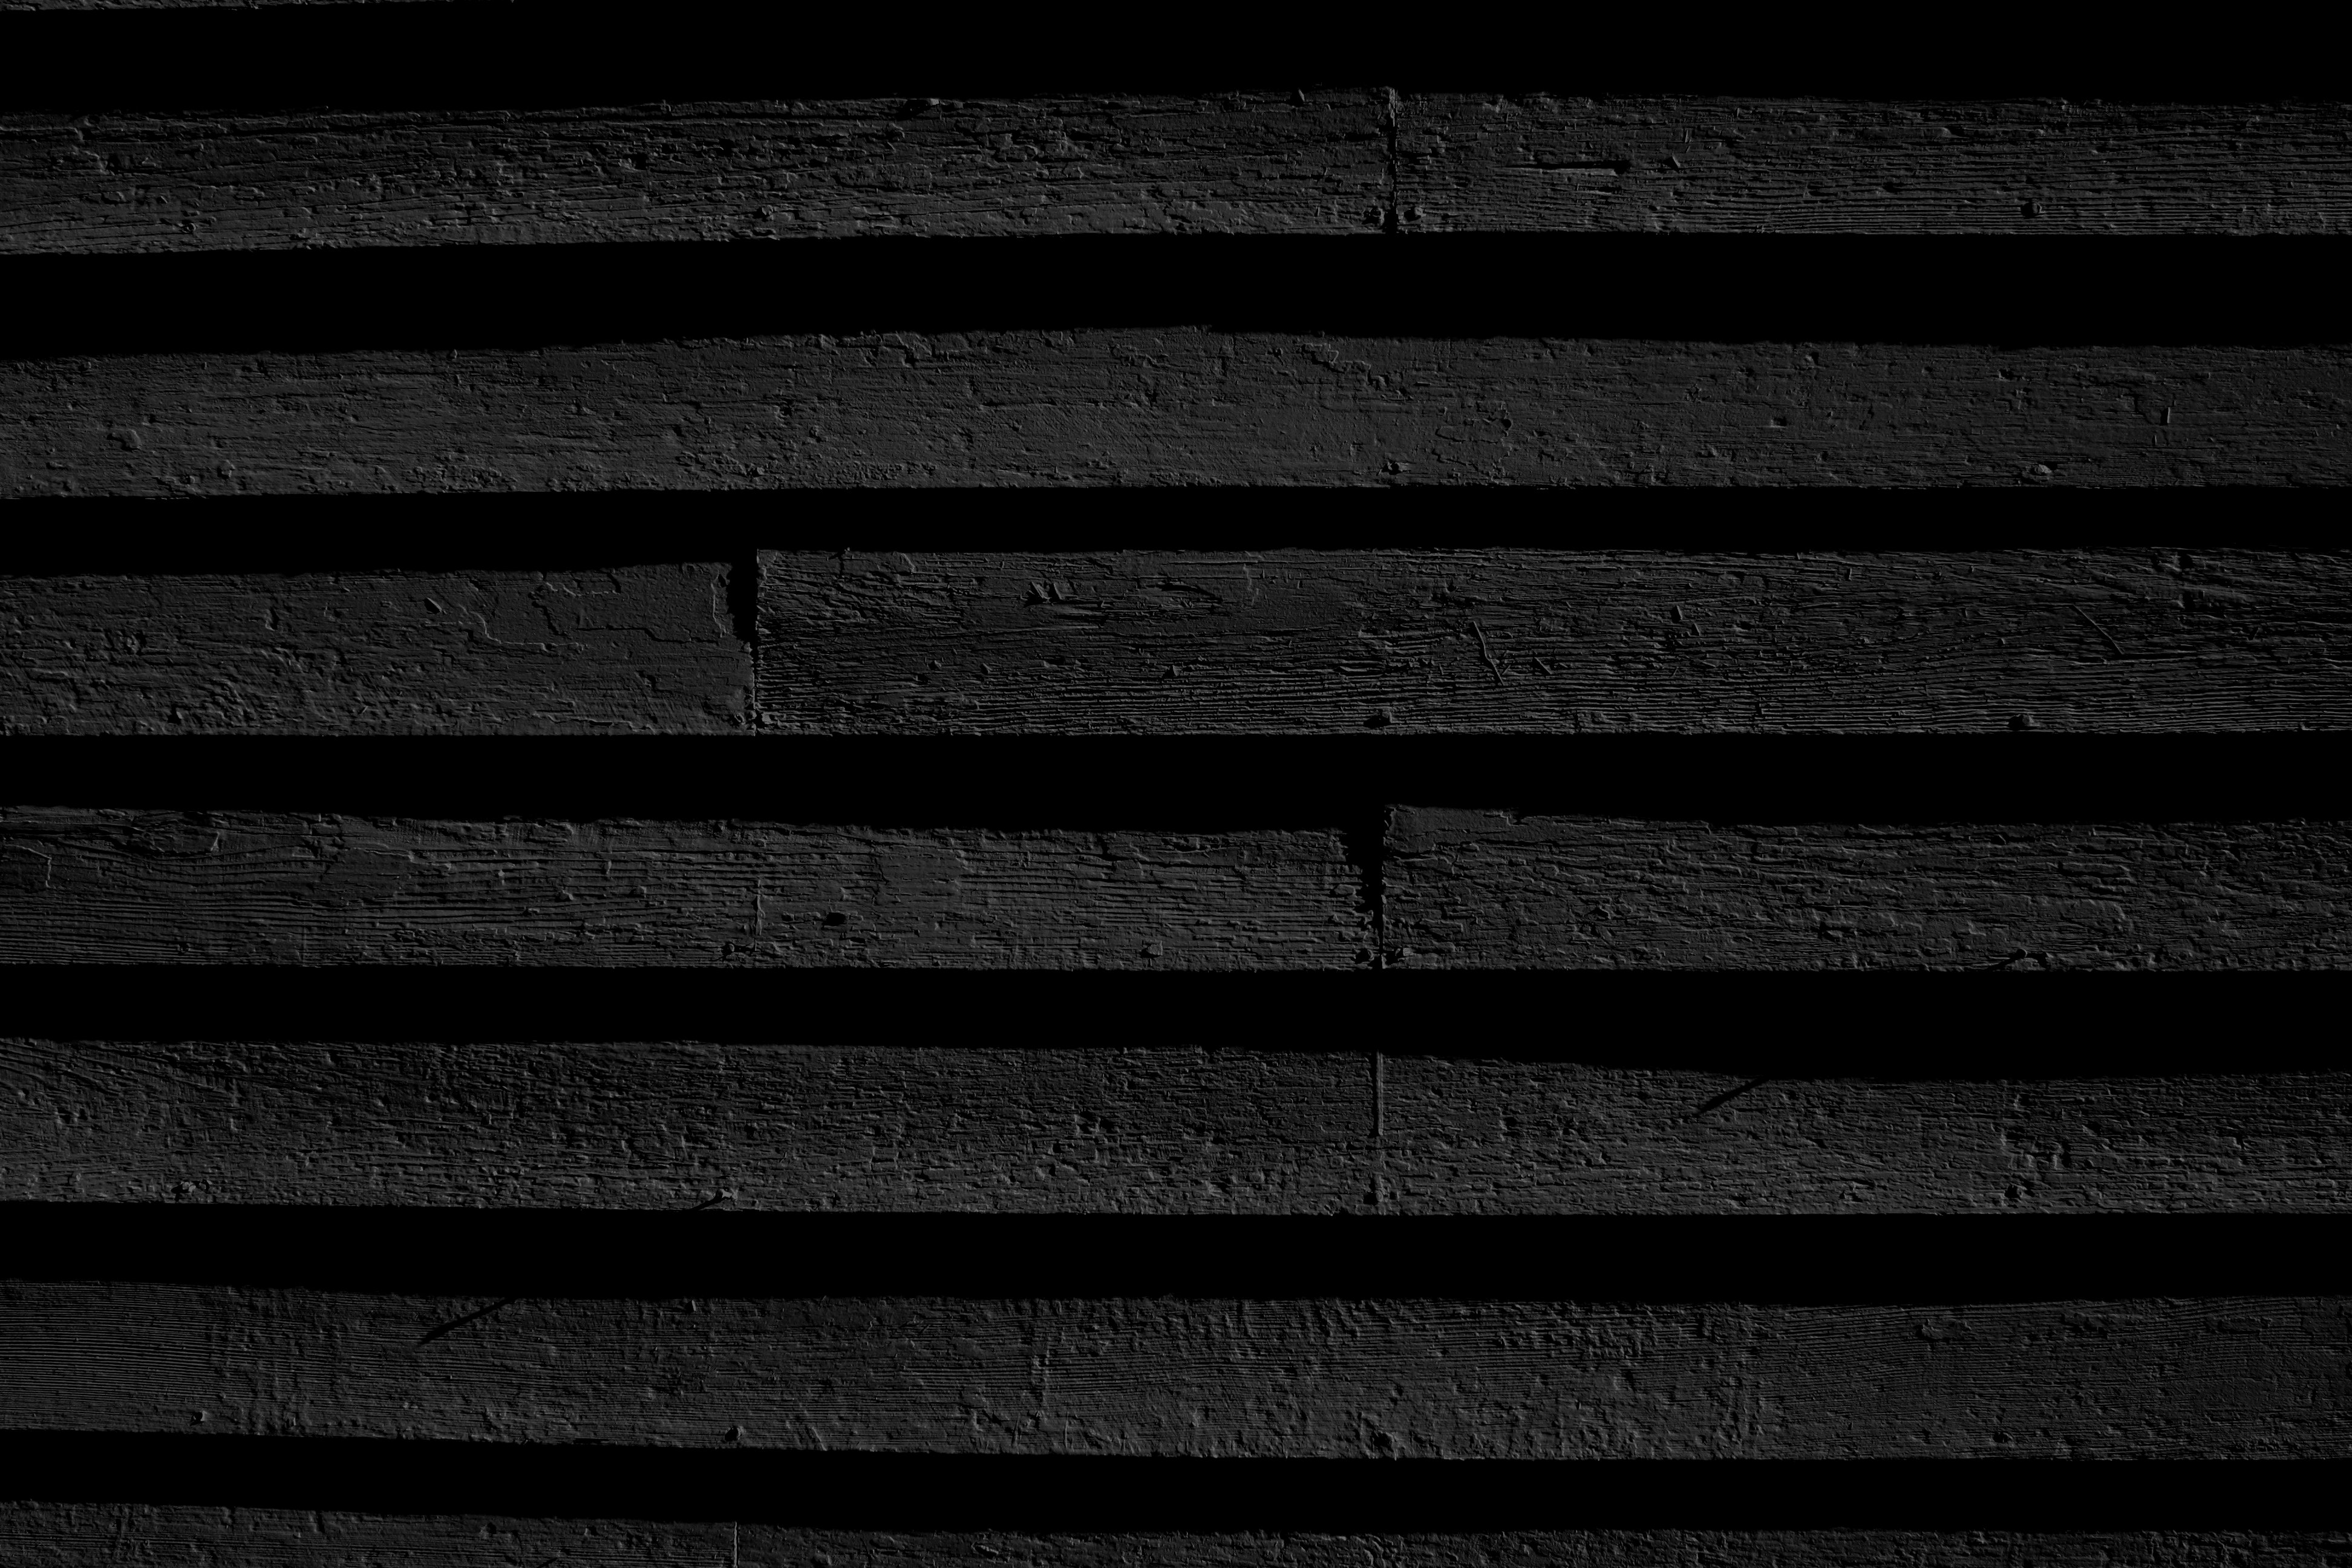 Black Painted Wooden Siding Texture Picture Free Photograph Photos Public Domain